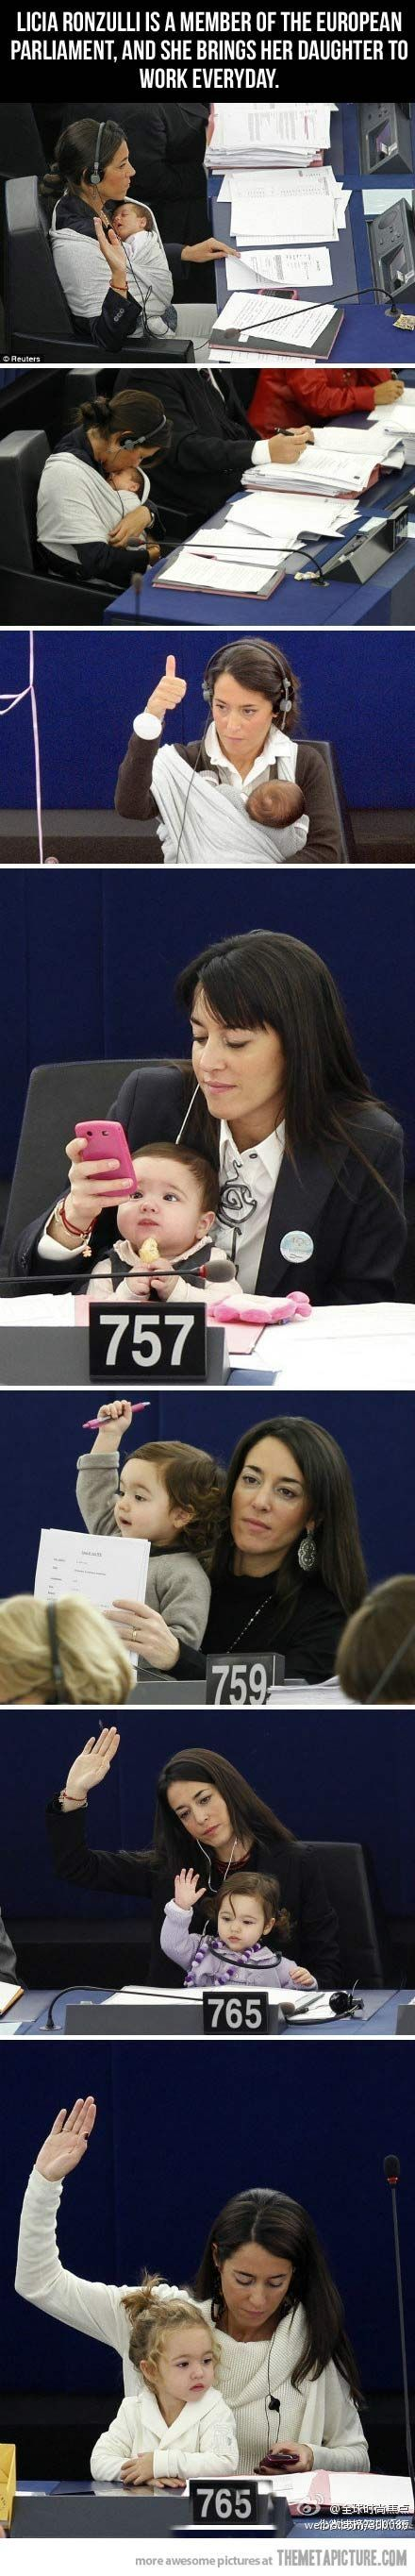 """We push women to study, to get a great job then at some point they have to choose between a family or a career. Women shouldnt have to choose"" Licia Ronzulli often brings her daughter at the European Parliament as a symbolic gesture to reclaim more rights for women in reconciling work and family life. LOVE THIS!!! by alta"